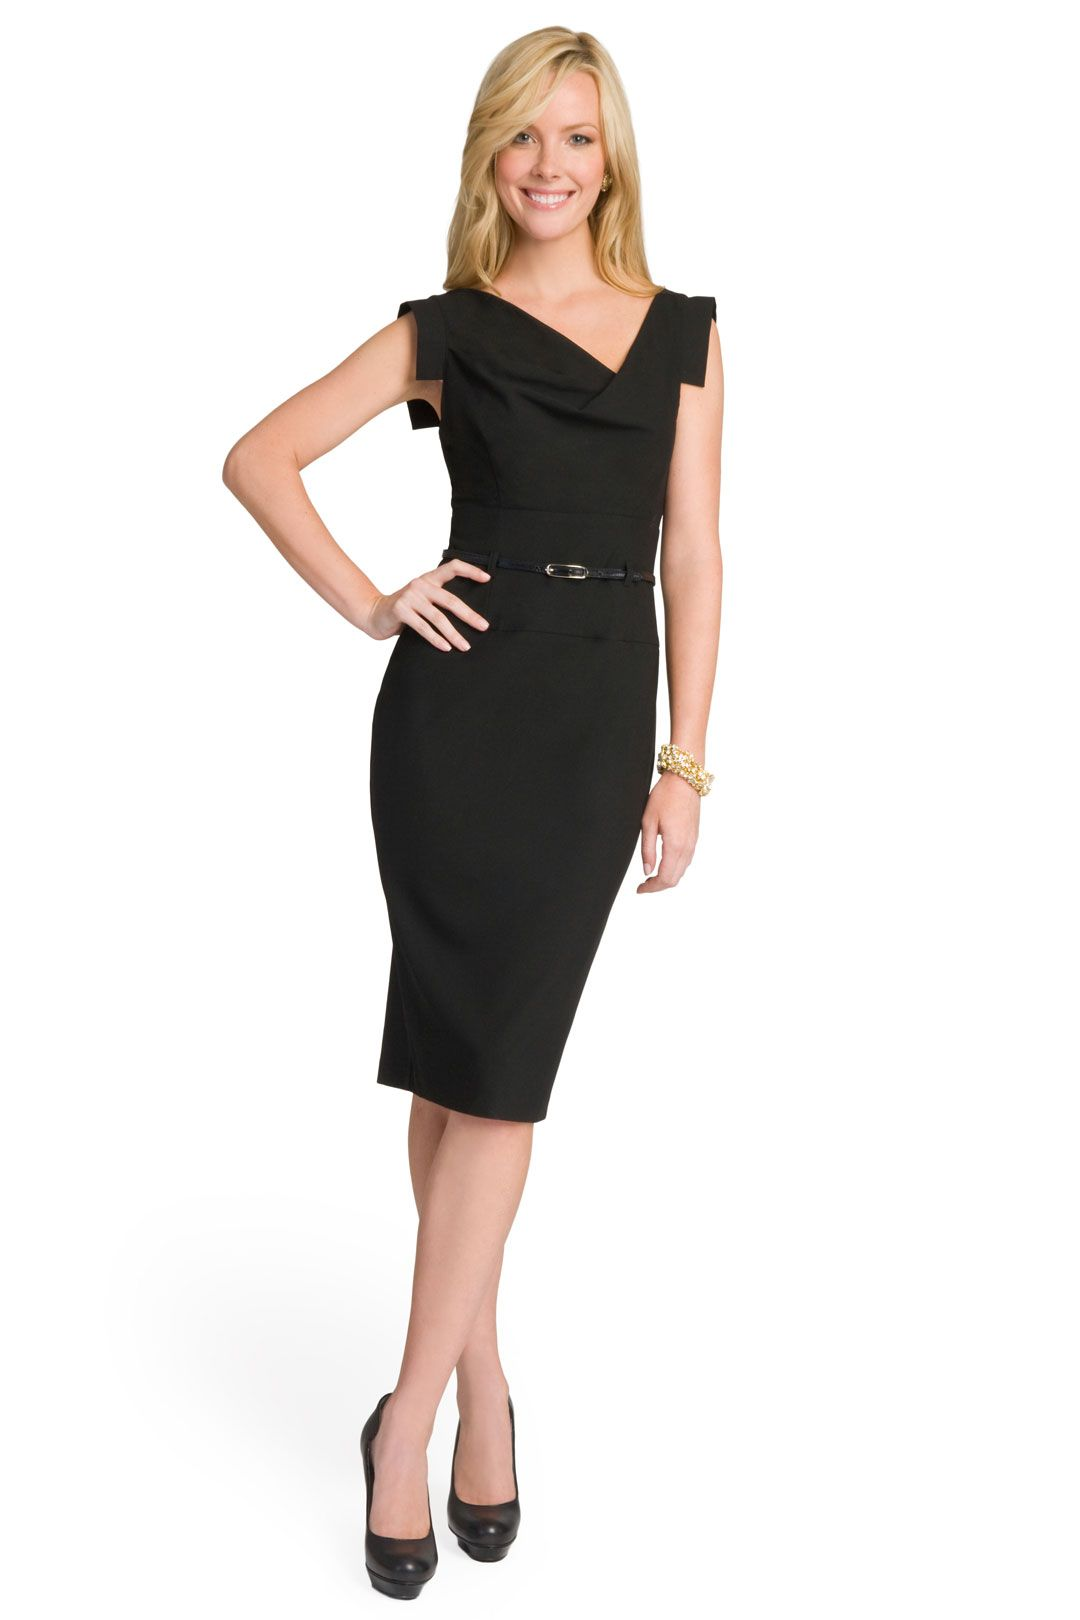 bf611e5c2bfb I want to own this dress so badly! THE Essential LBD for work!   Black Halo  — Jackie O Dress